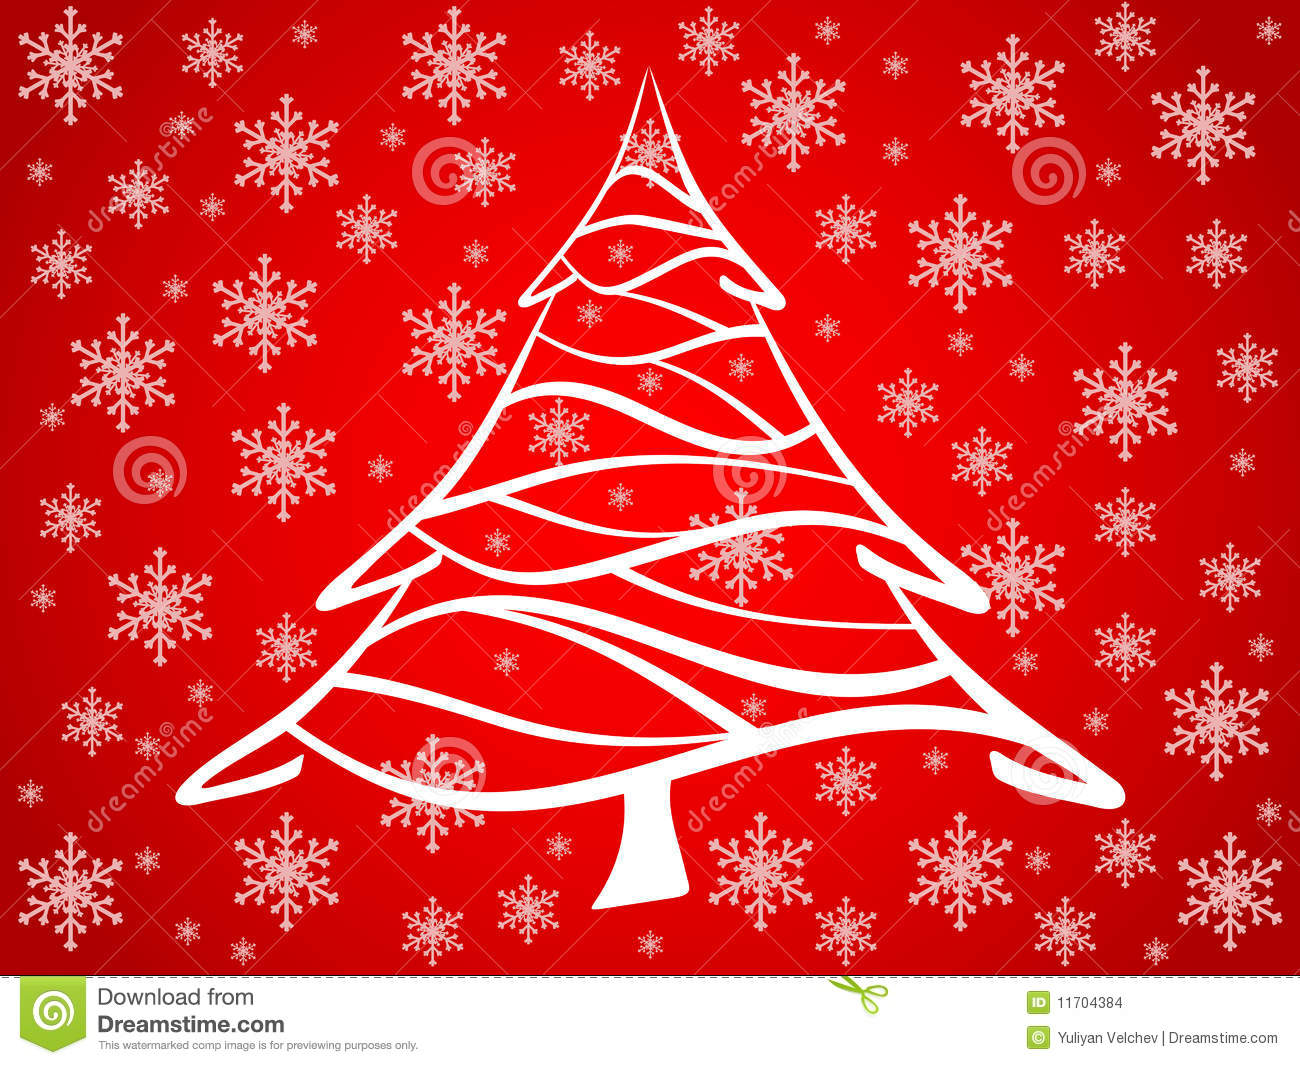 red christmas tree background - photo #41